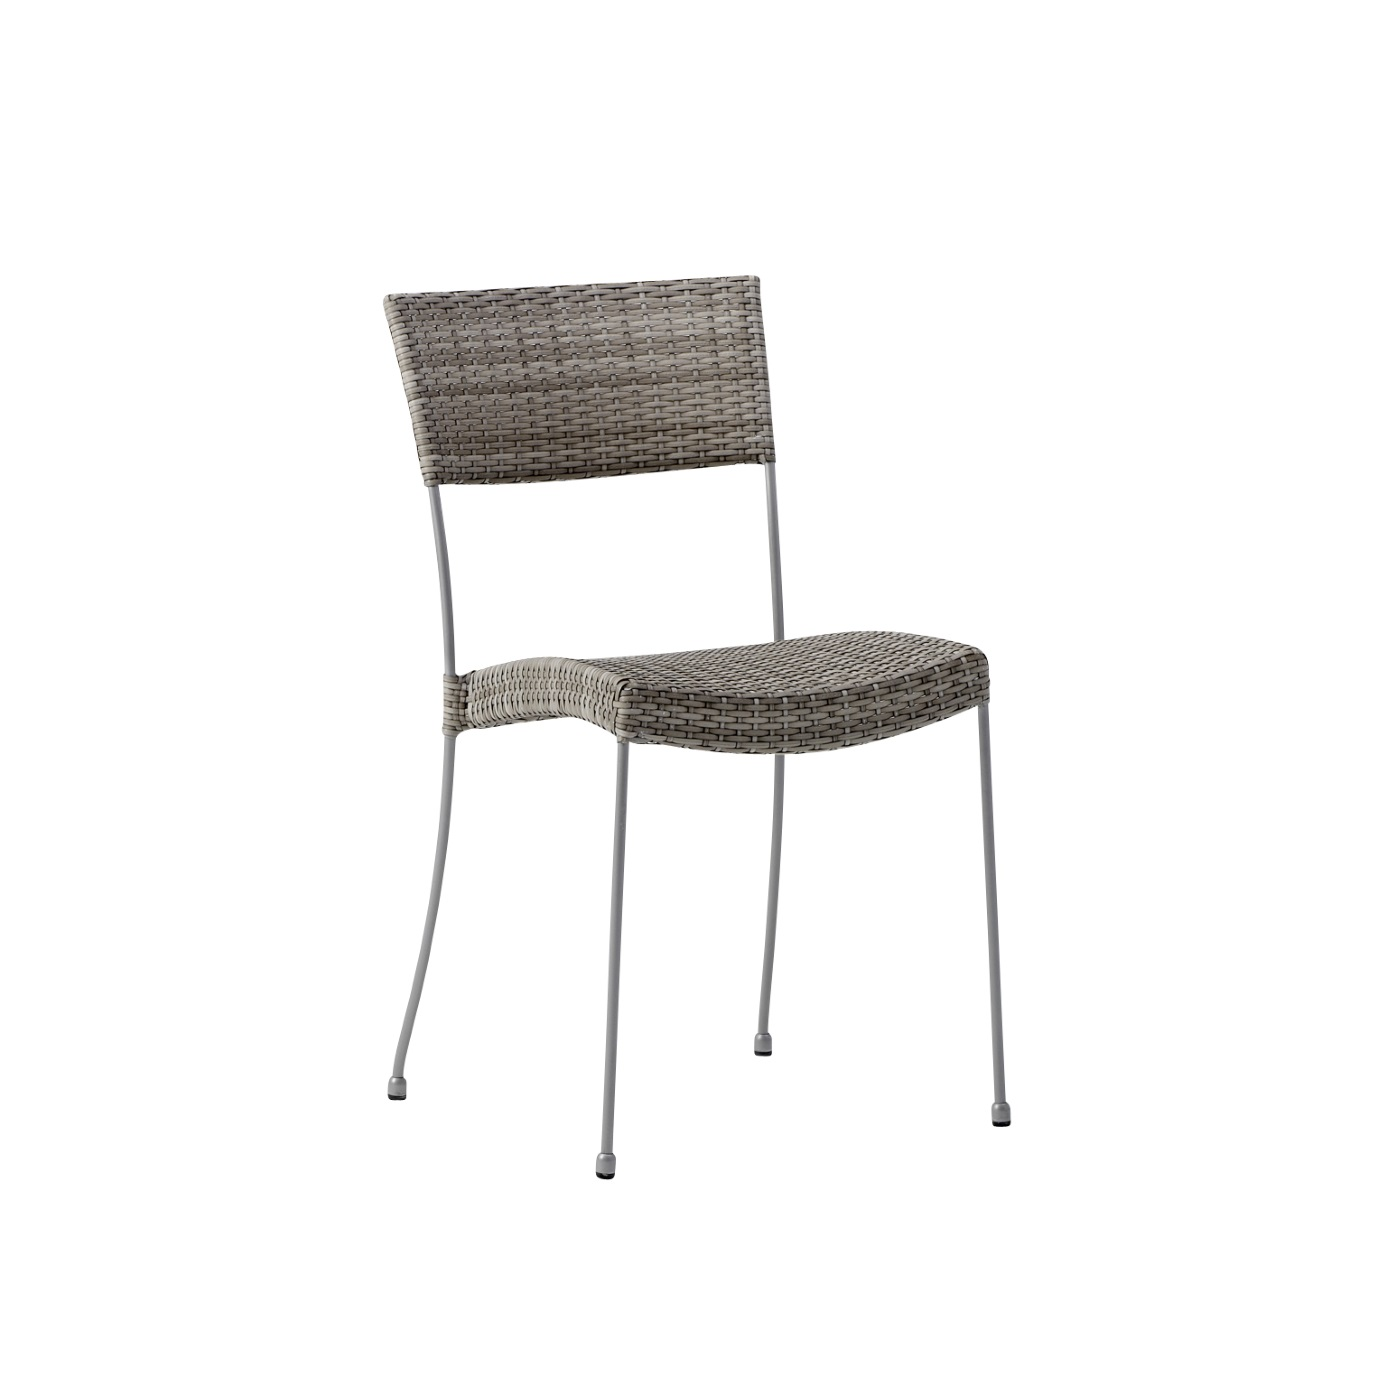 COMET stol konstrotting grey, Sika-Design